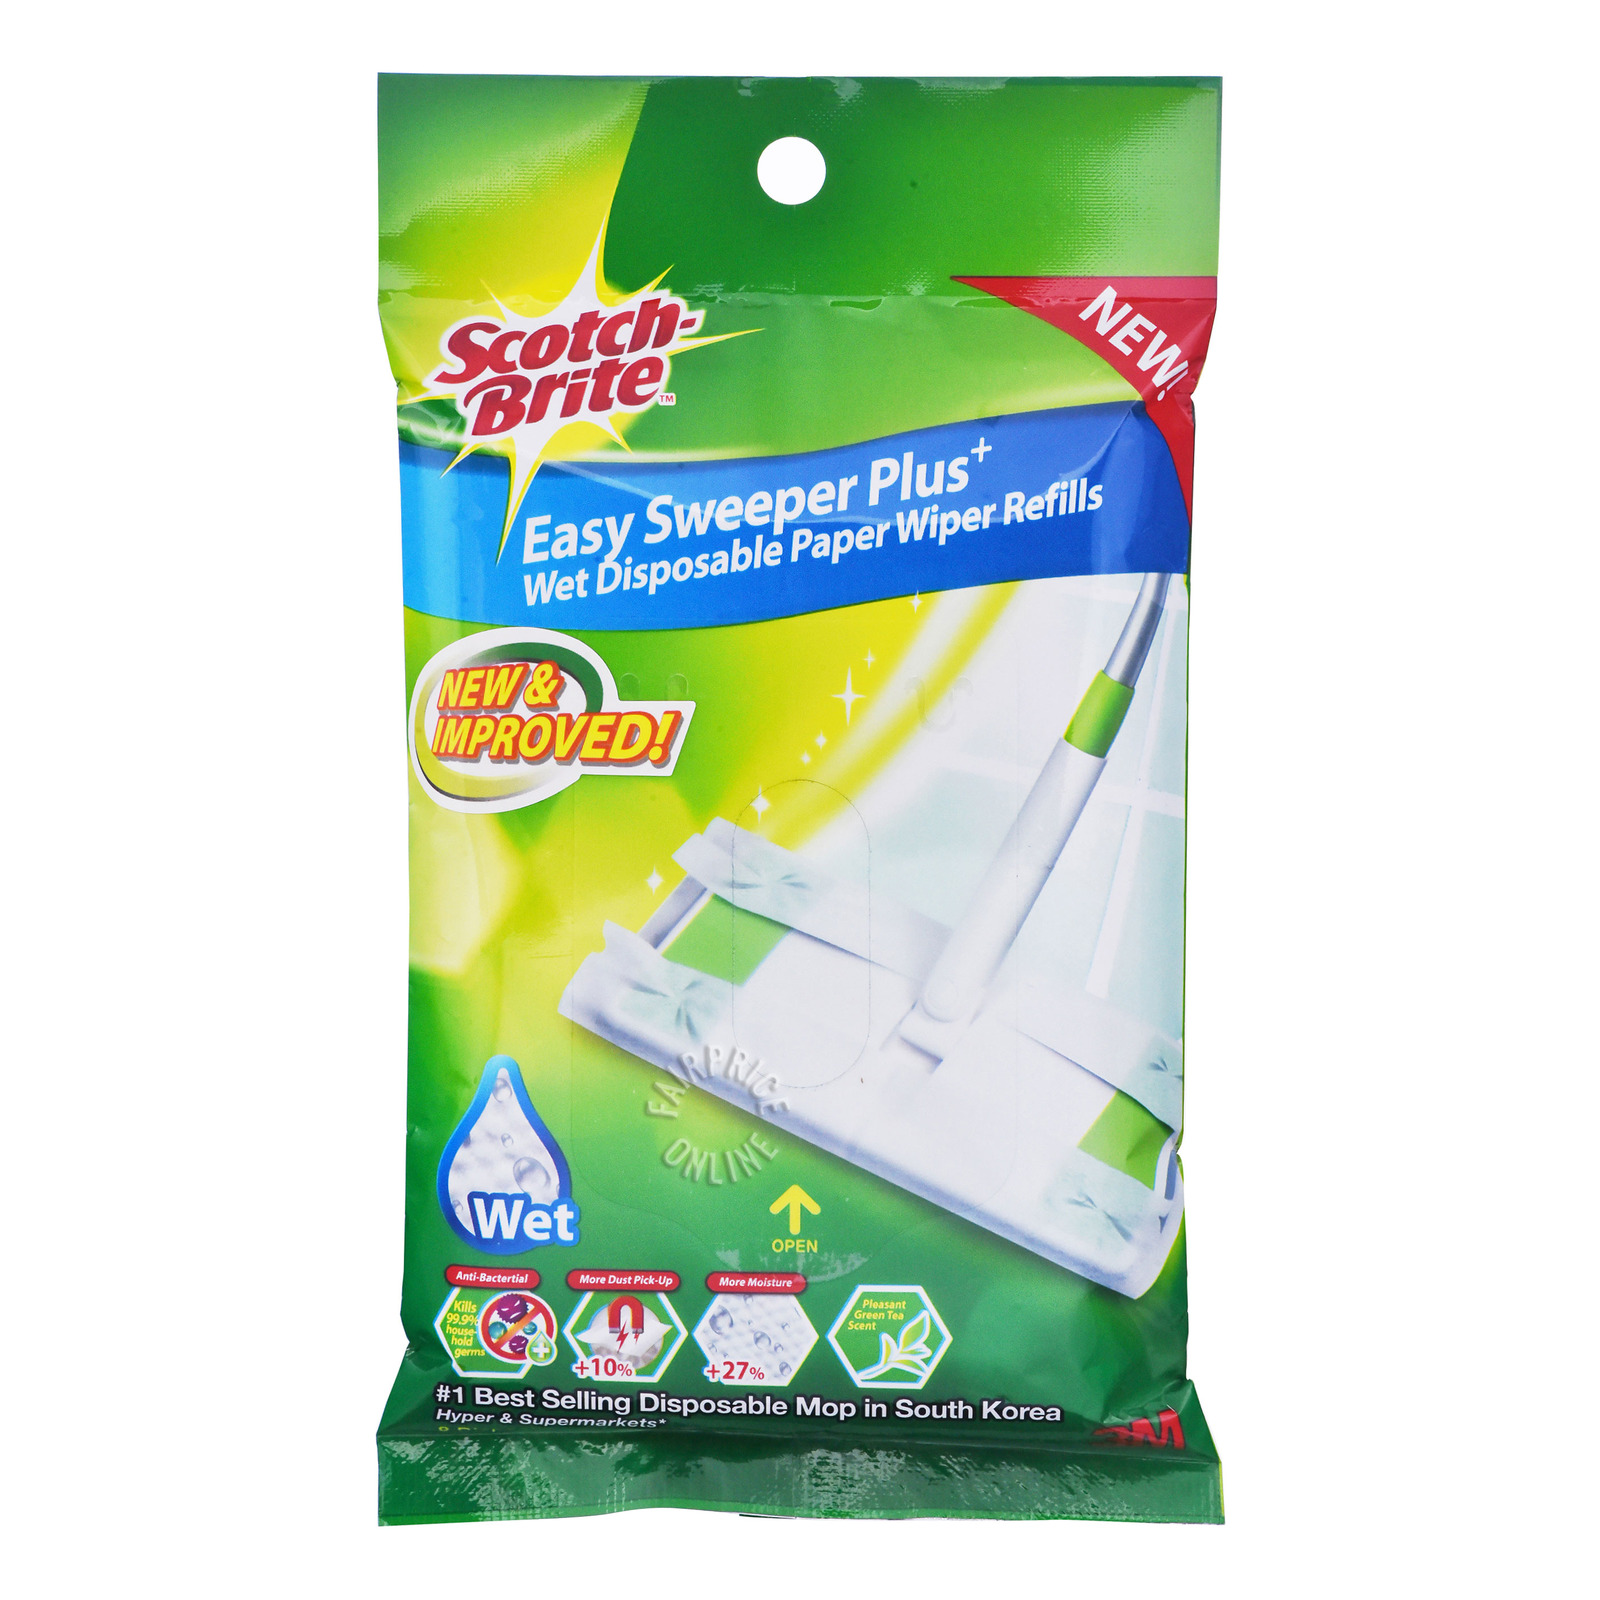 3M Scotch-Brite Anti Bact Wiper-EasySweeperPlus(Wet)